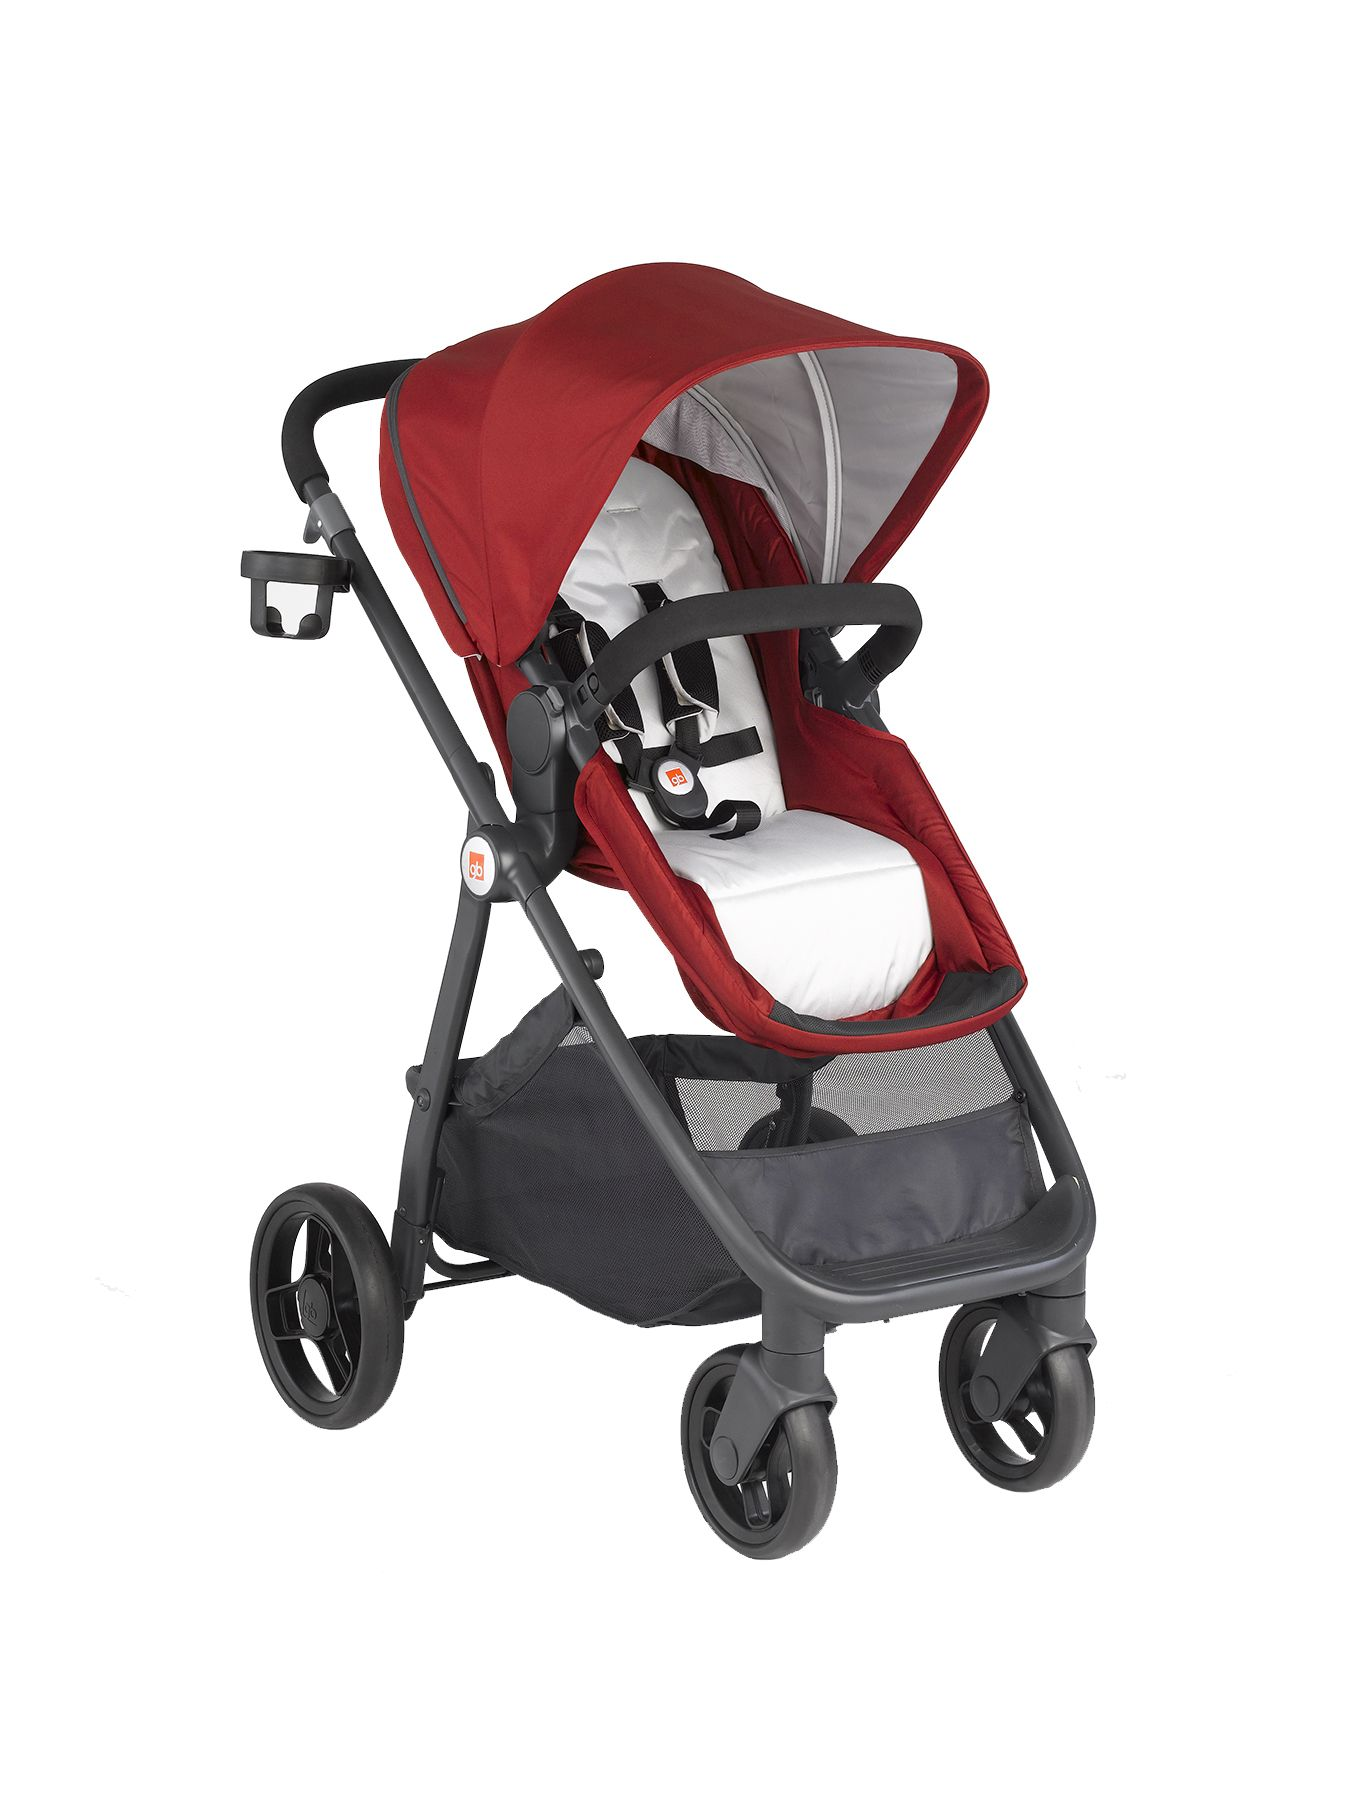 gb Pockit Compact Stroller Stroller, Compact strollers